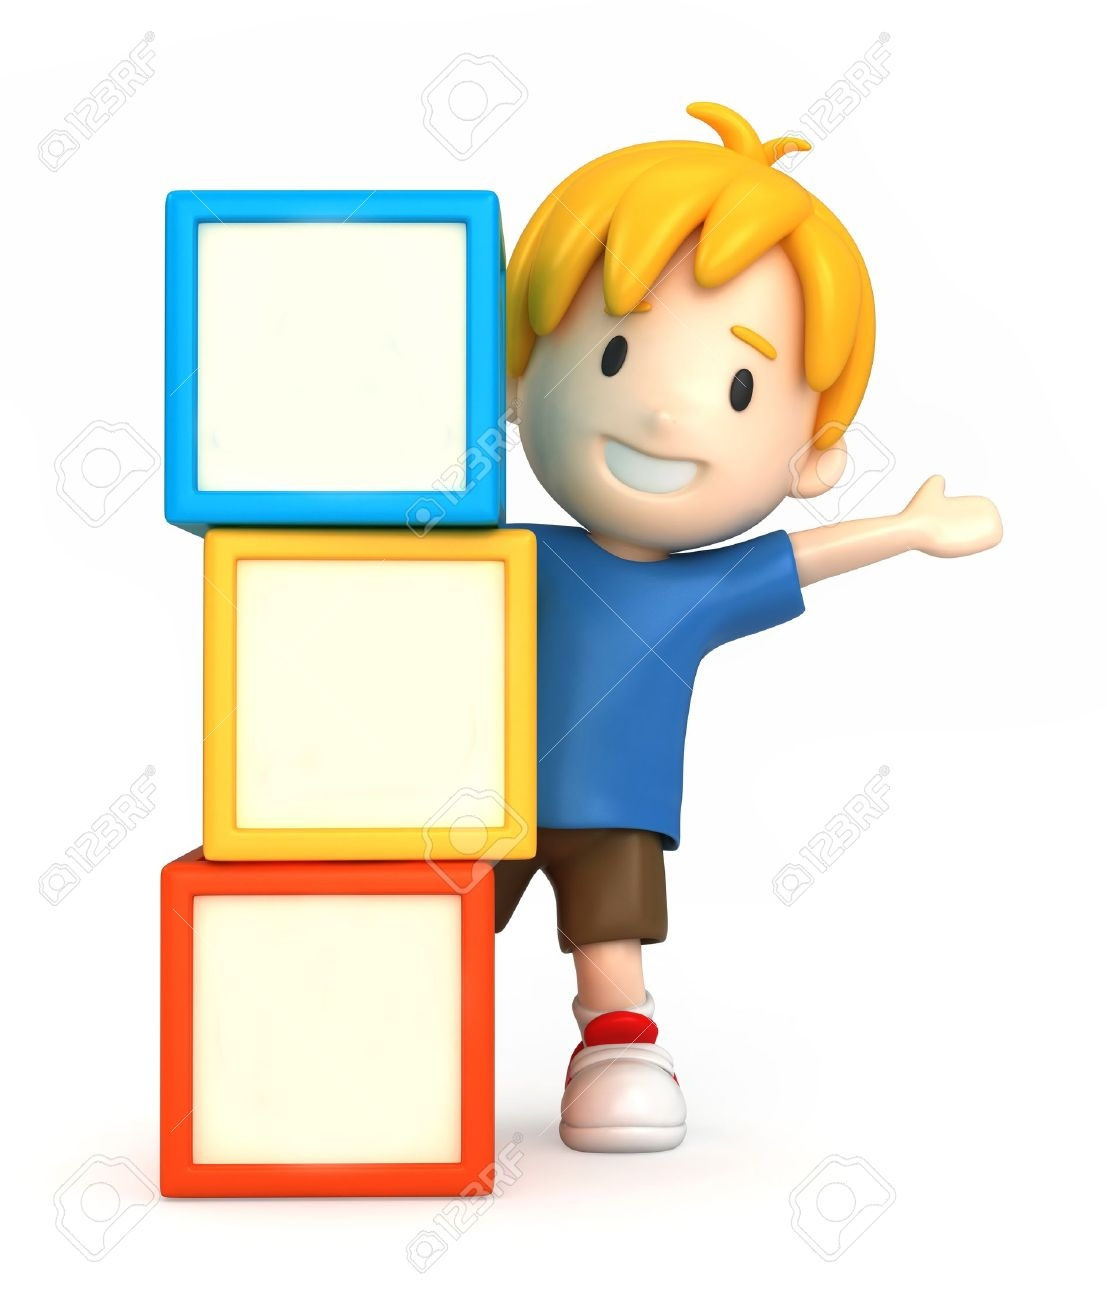 Building blocks clipart images - ClipartFox svg stock